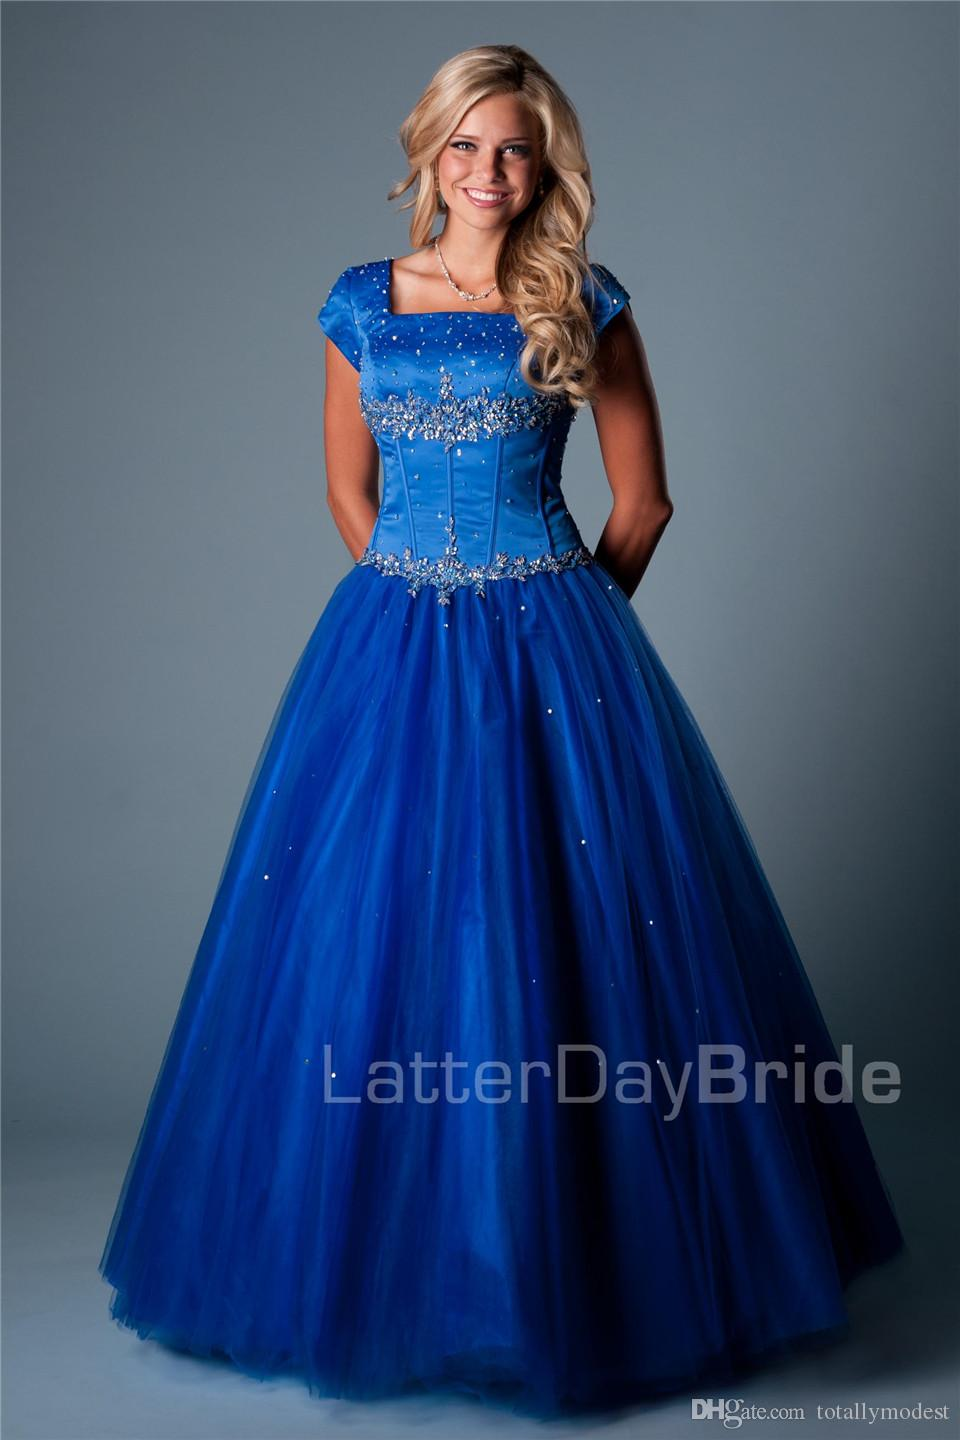 Royal Blue Ball Gown Long Modest Prom Dresses With Cap Sleeves Square Beaded Crystals Puffy Floor Length Girls Teens Prom Party Dresses